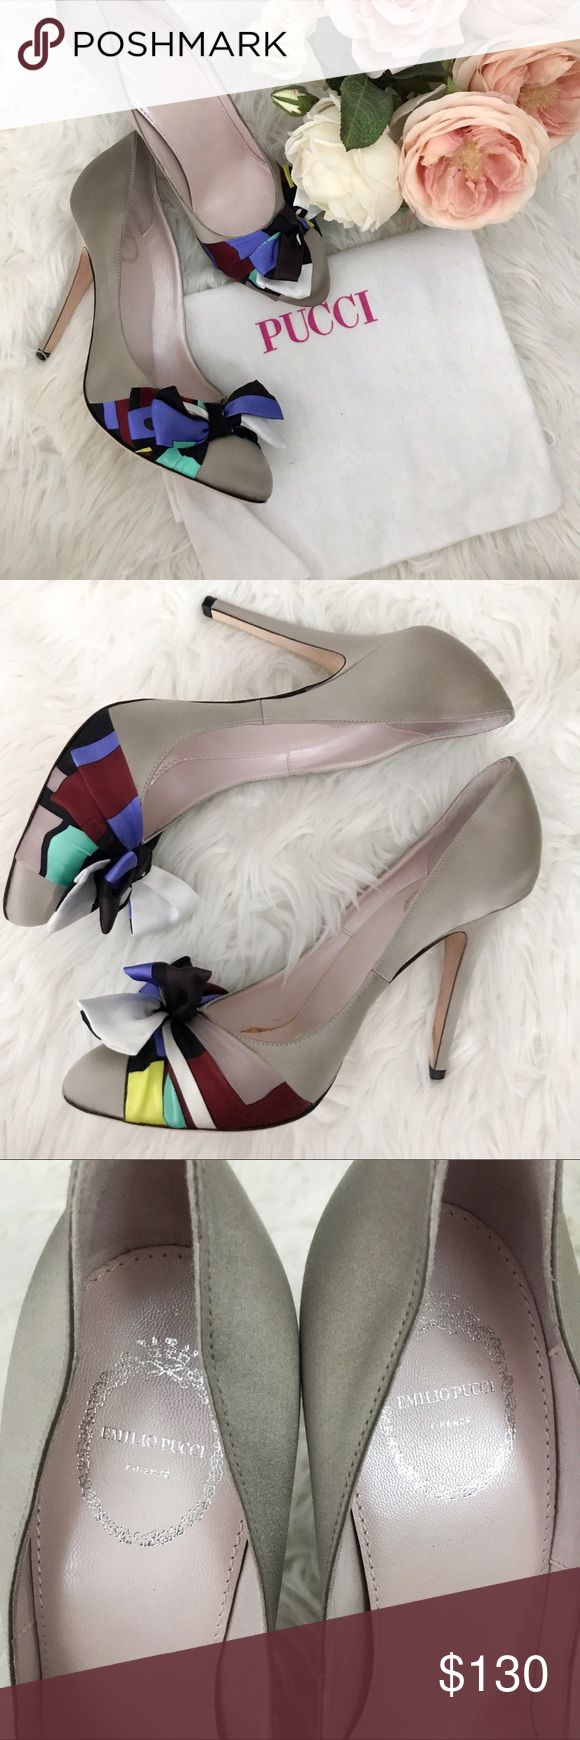 """Authentic Emilio Pucci Satin Pumps 👠 4.5"""" heel • made in Italy 🇮🇹 • new without box, dust bag only Emilio Pucci Shoes Heels"""